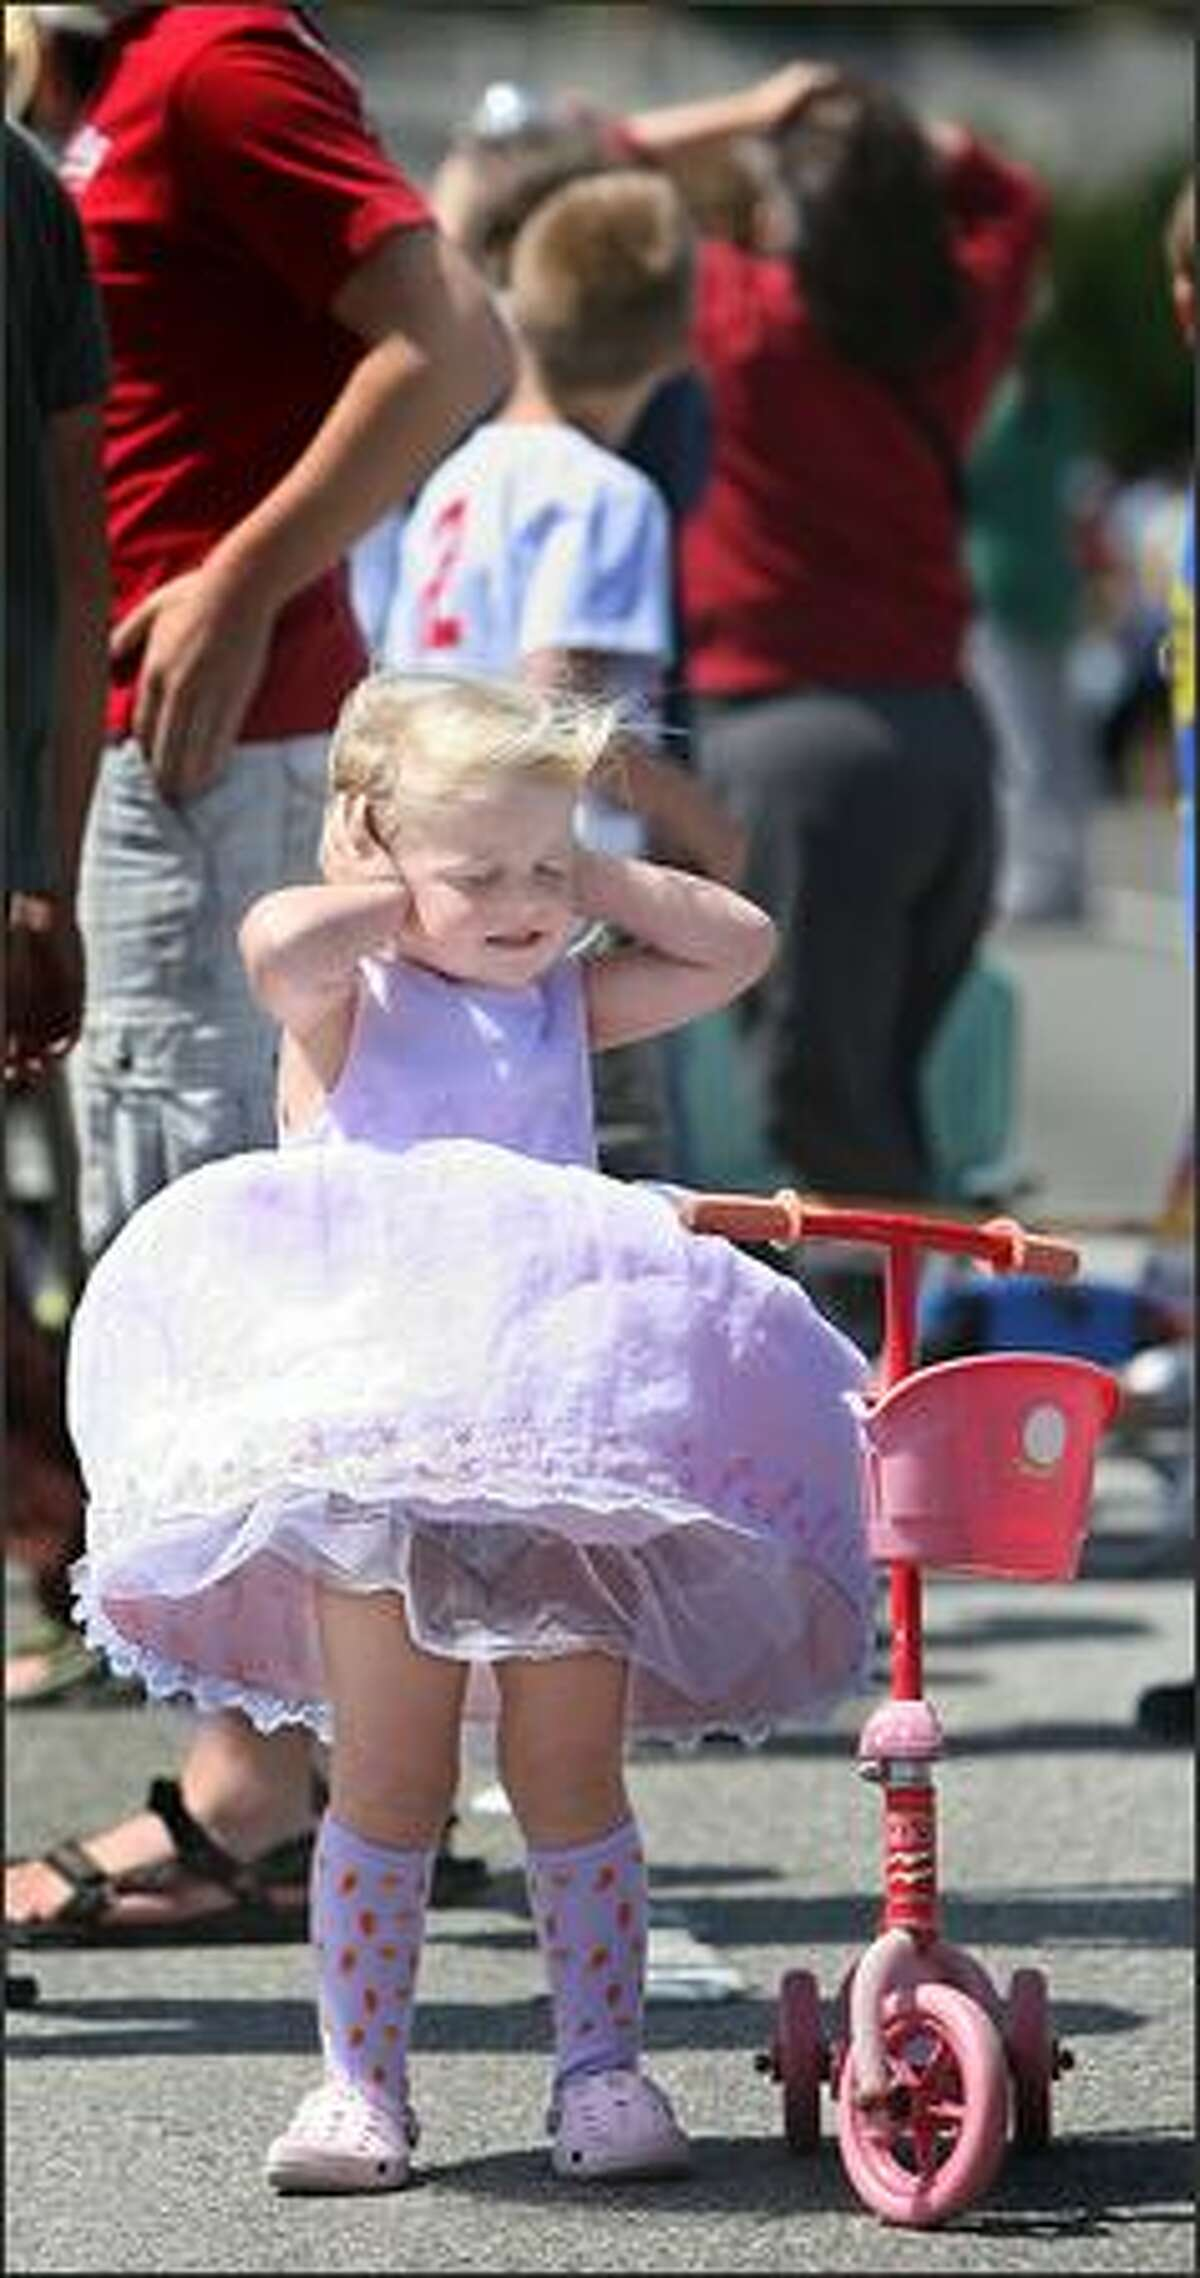 Three-year-old Vivian Gaither, of Seattle, didn't seem too impressed as the wind blew her dress up, as she and her family watched stunt planes perform at Seafair.Eklund: I have shot Seafair and the Blue Angels probably 15 to 20 times in my career. Sometimes the